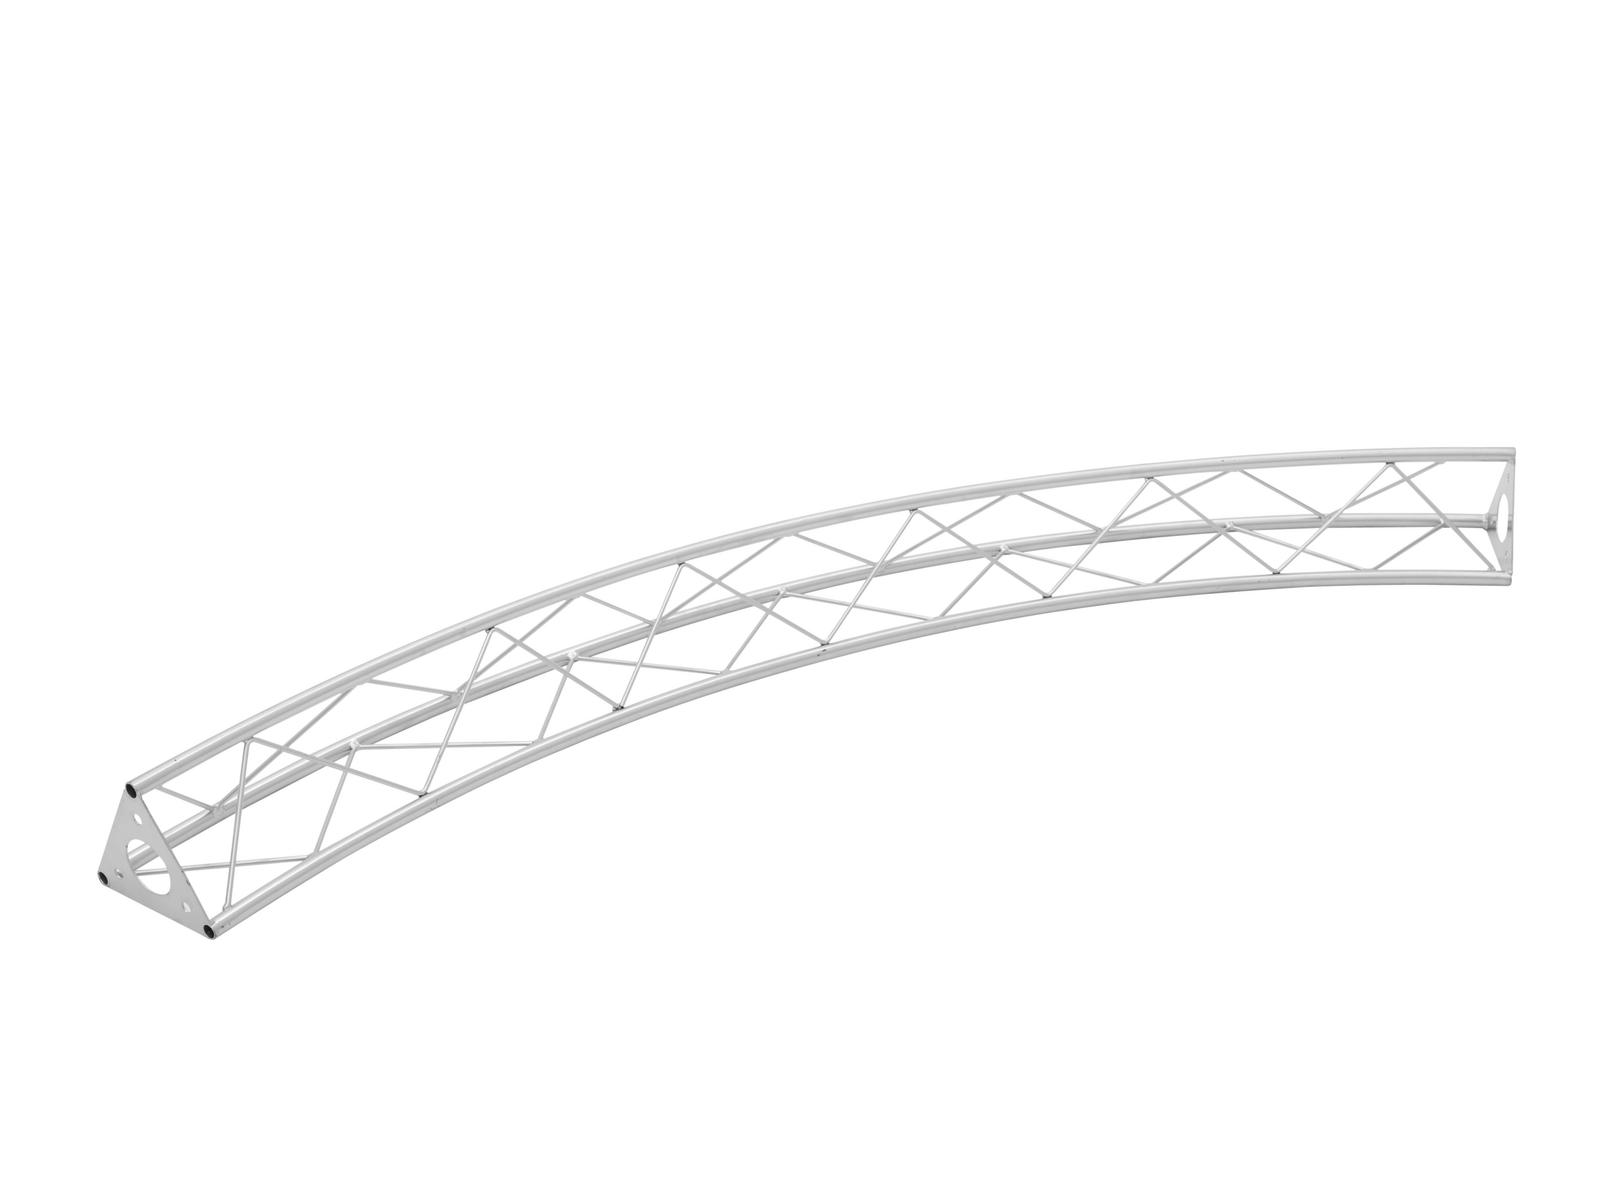 Decotruss Circle 2m section 1570mm, silver